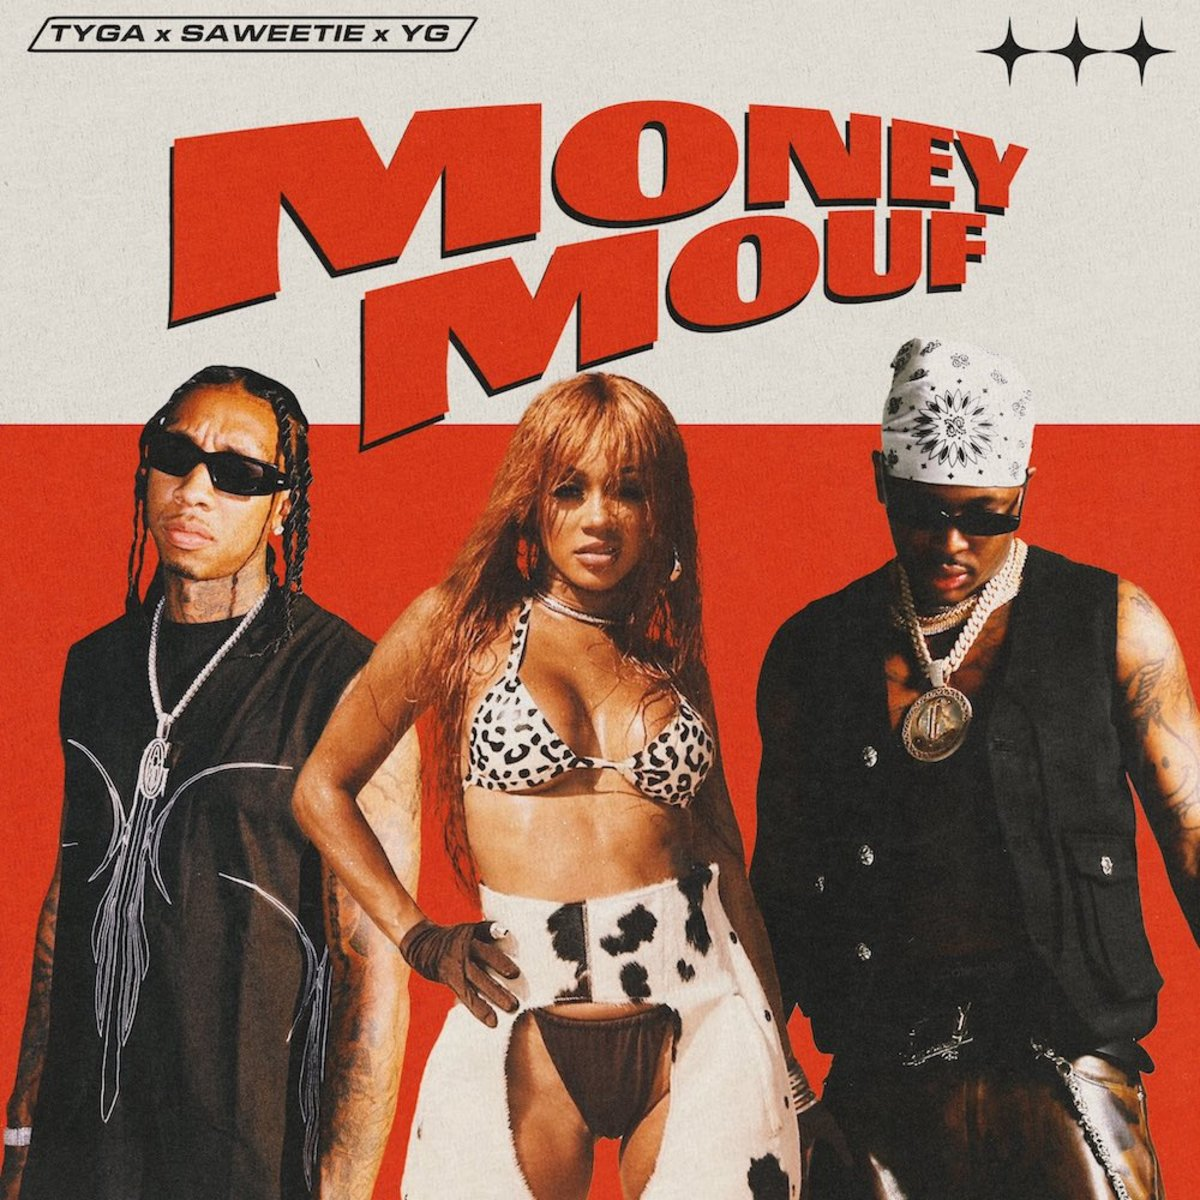 """.@Tyga taps @YG and @Saweetie for new track """"Money Mouf"""": https://t.co/zxSwNPNght https://t.co/btiKjCMCw3"""